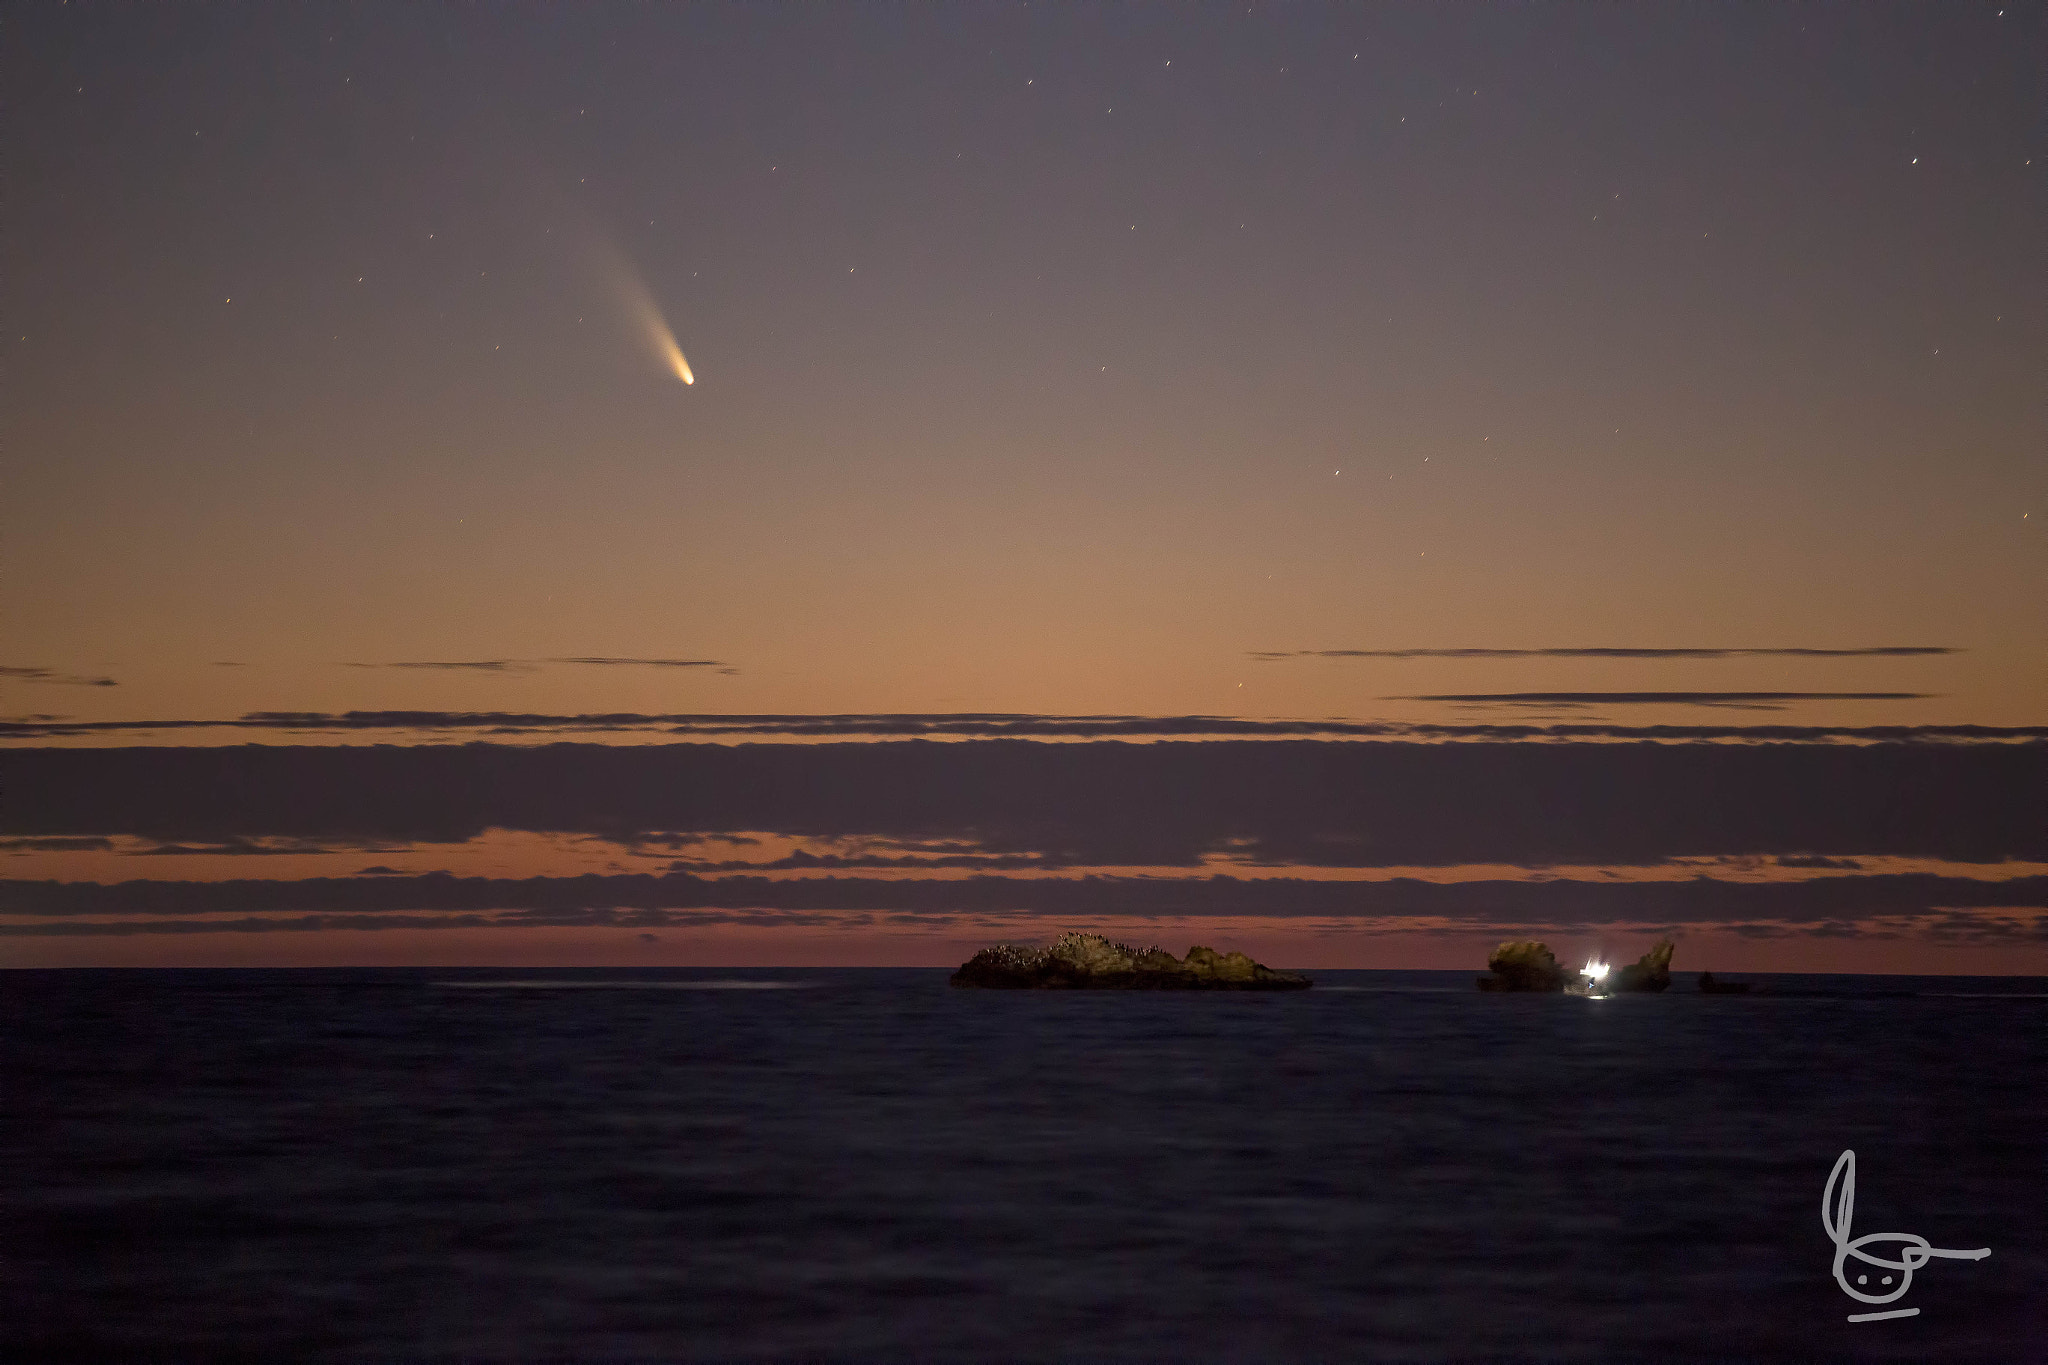 Photograph Comet Panstarrs by Michael  Goh on 500px